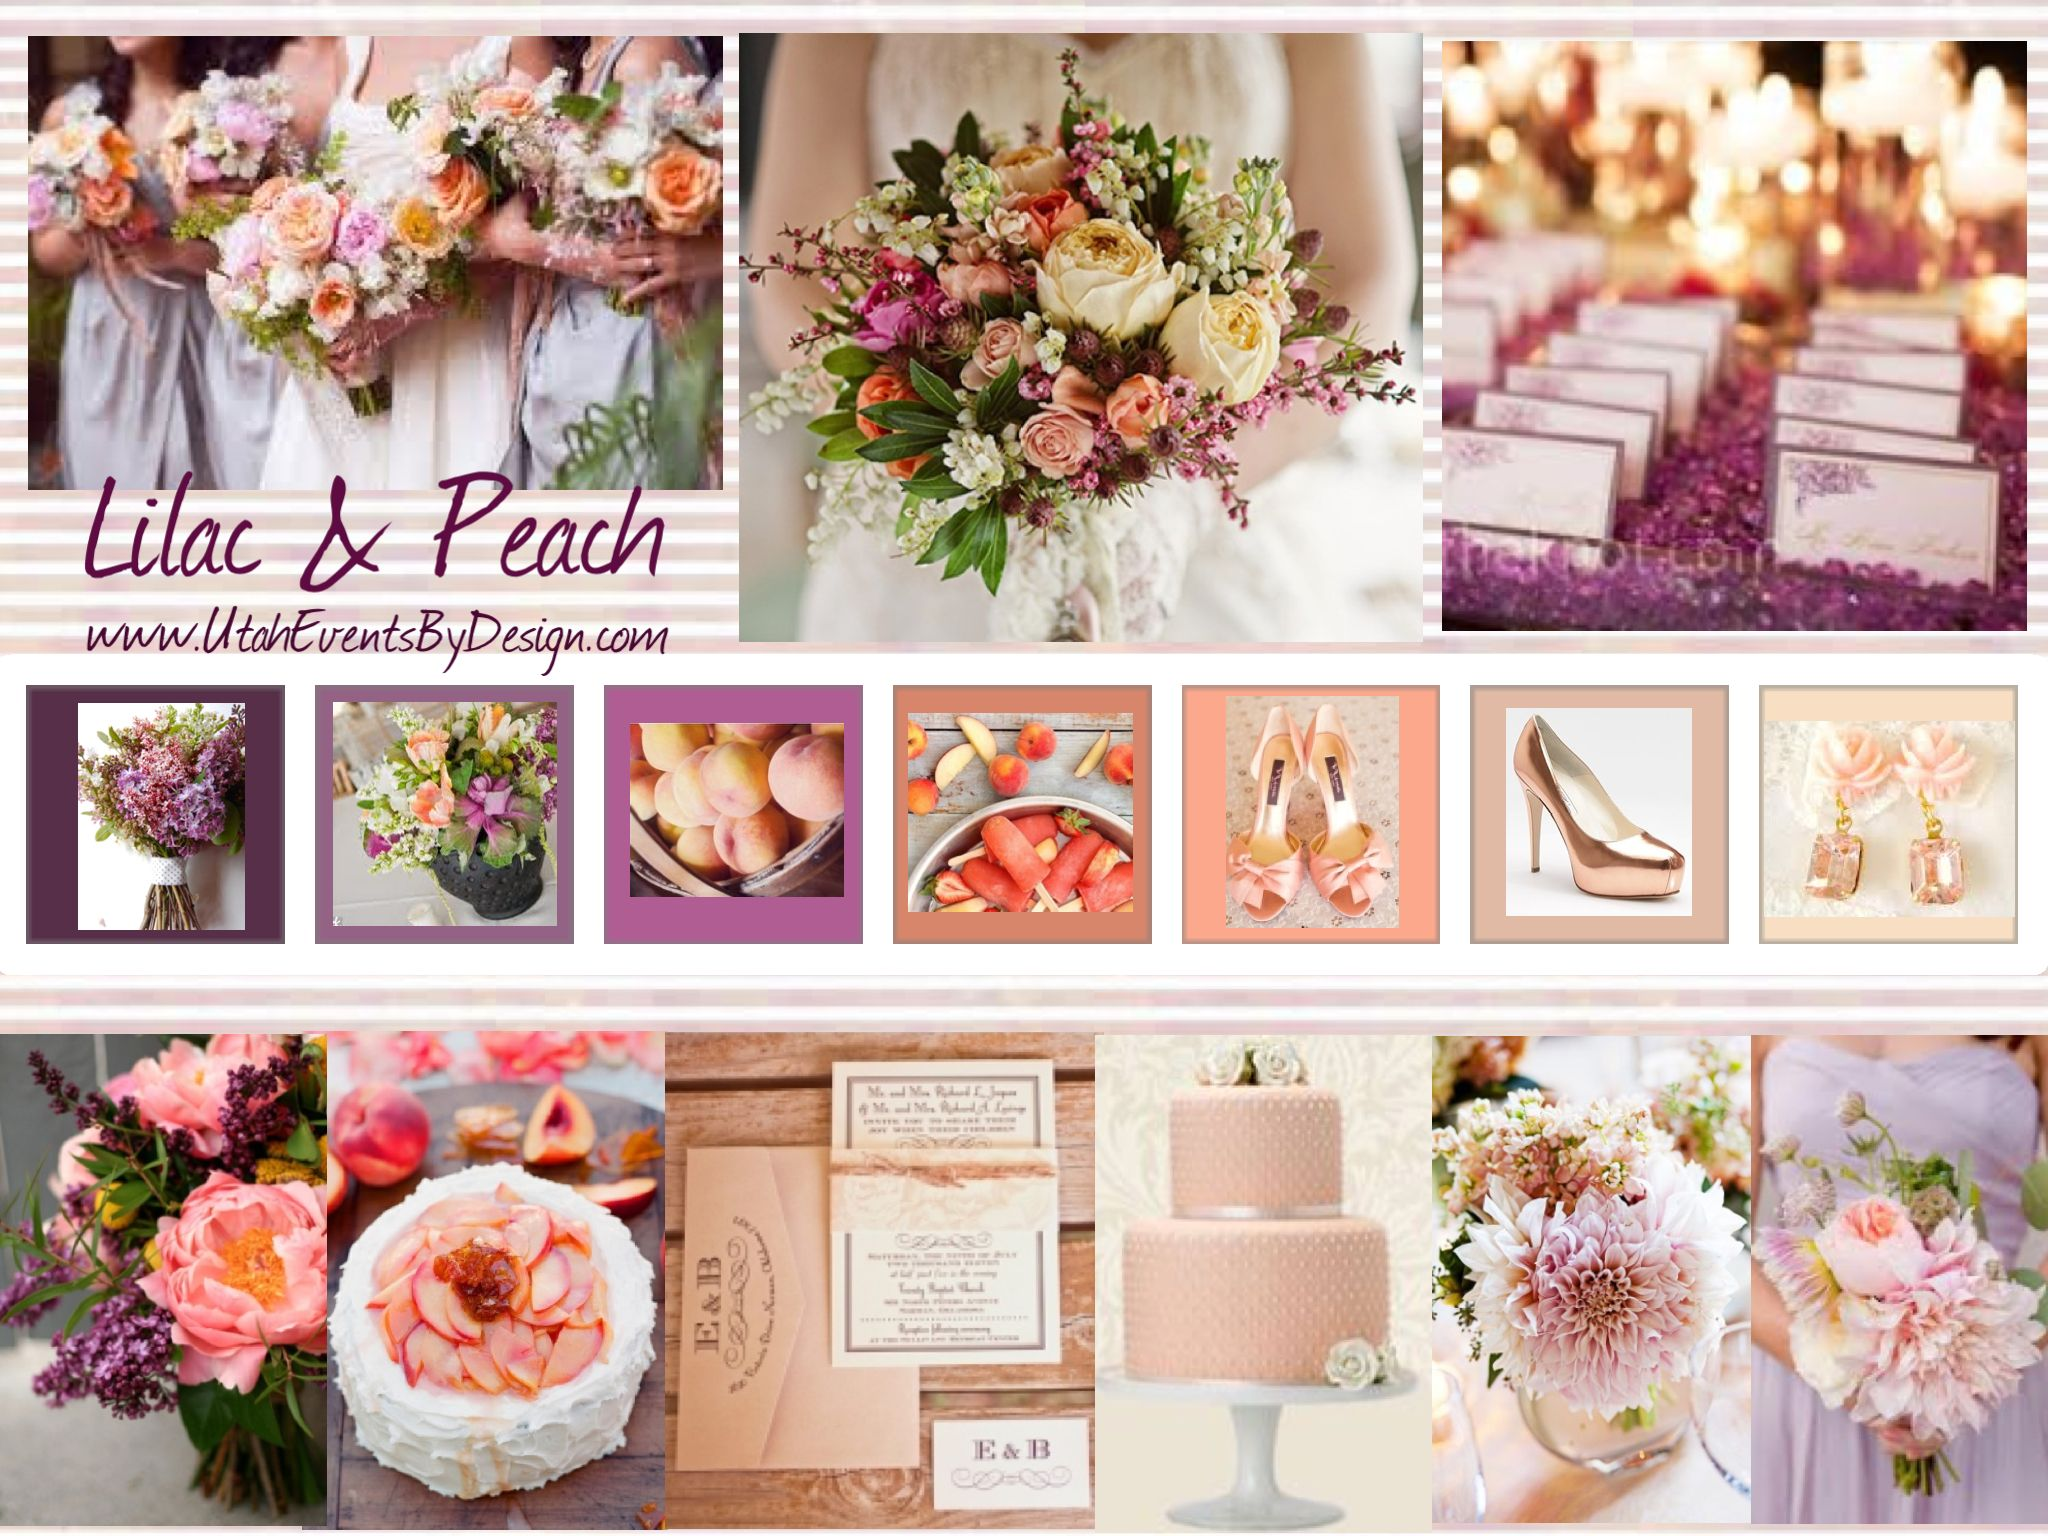 Lilac Peach Wedding Inspiration By Utah Events Design